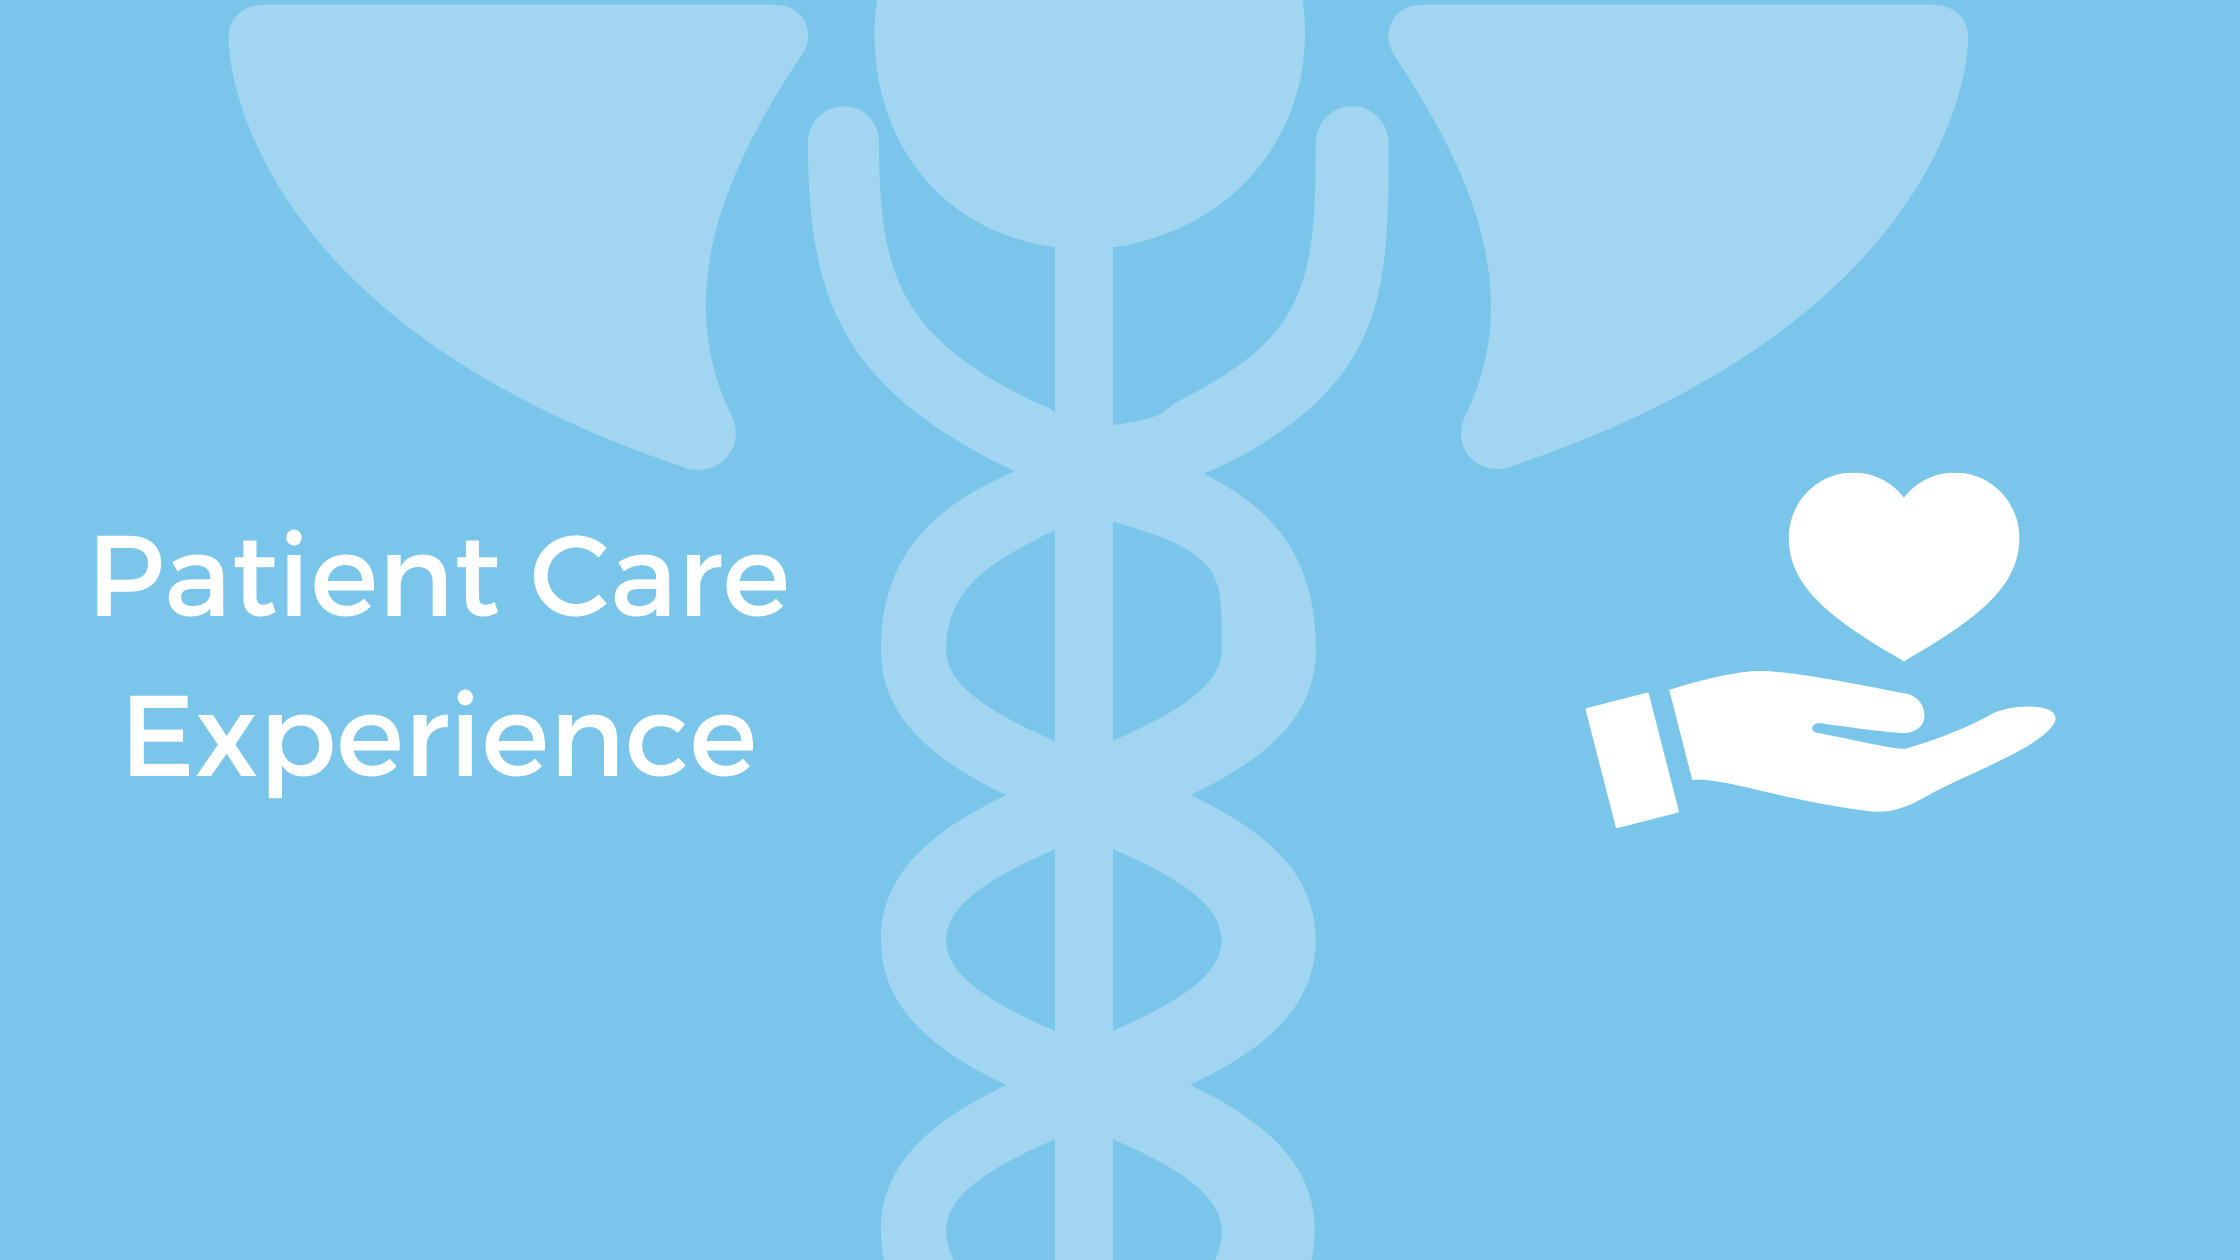 Patient Care Experience